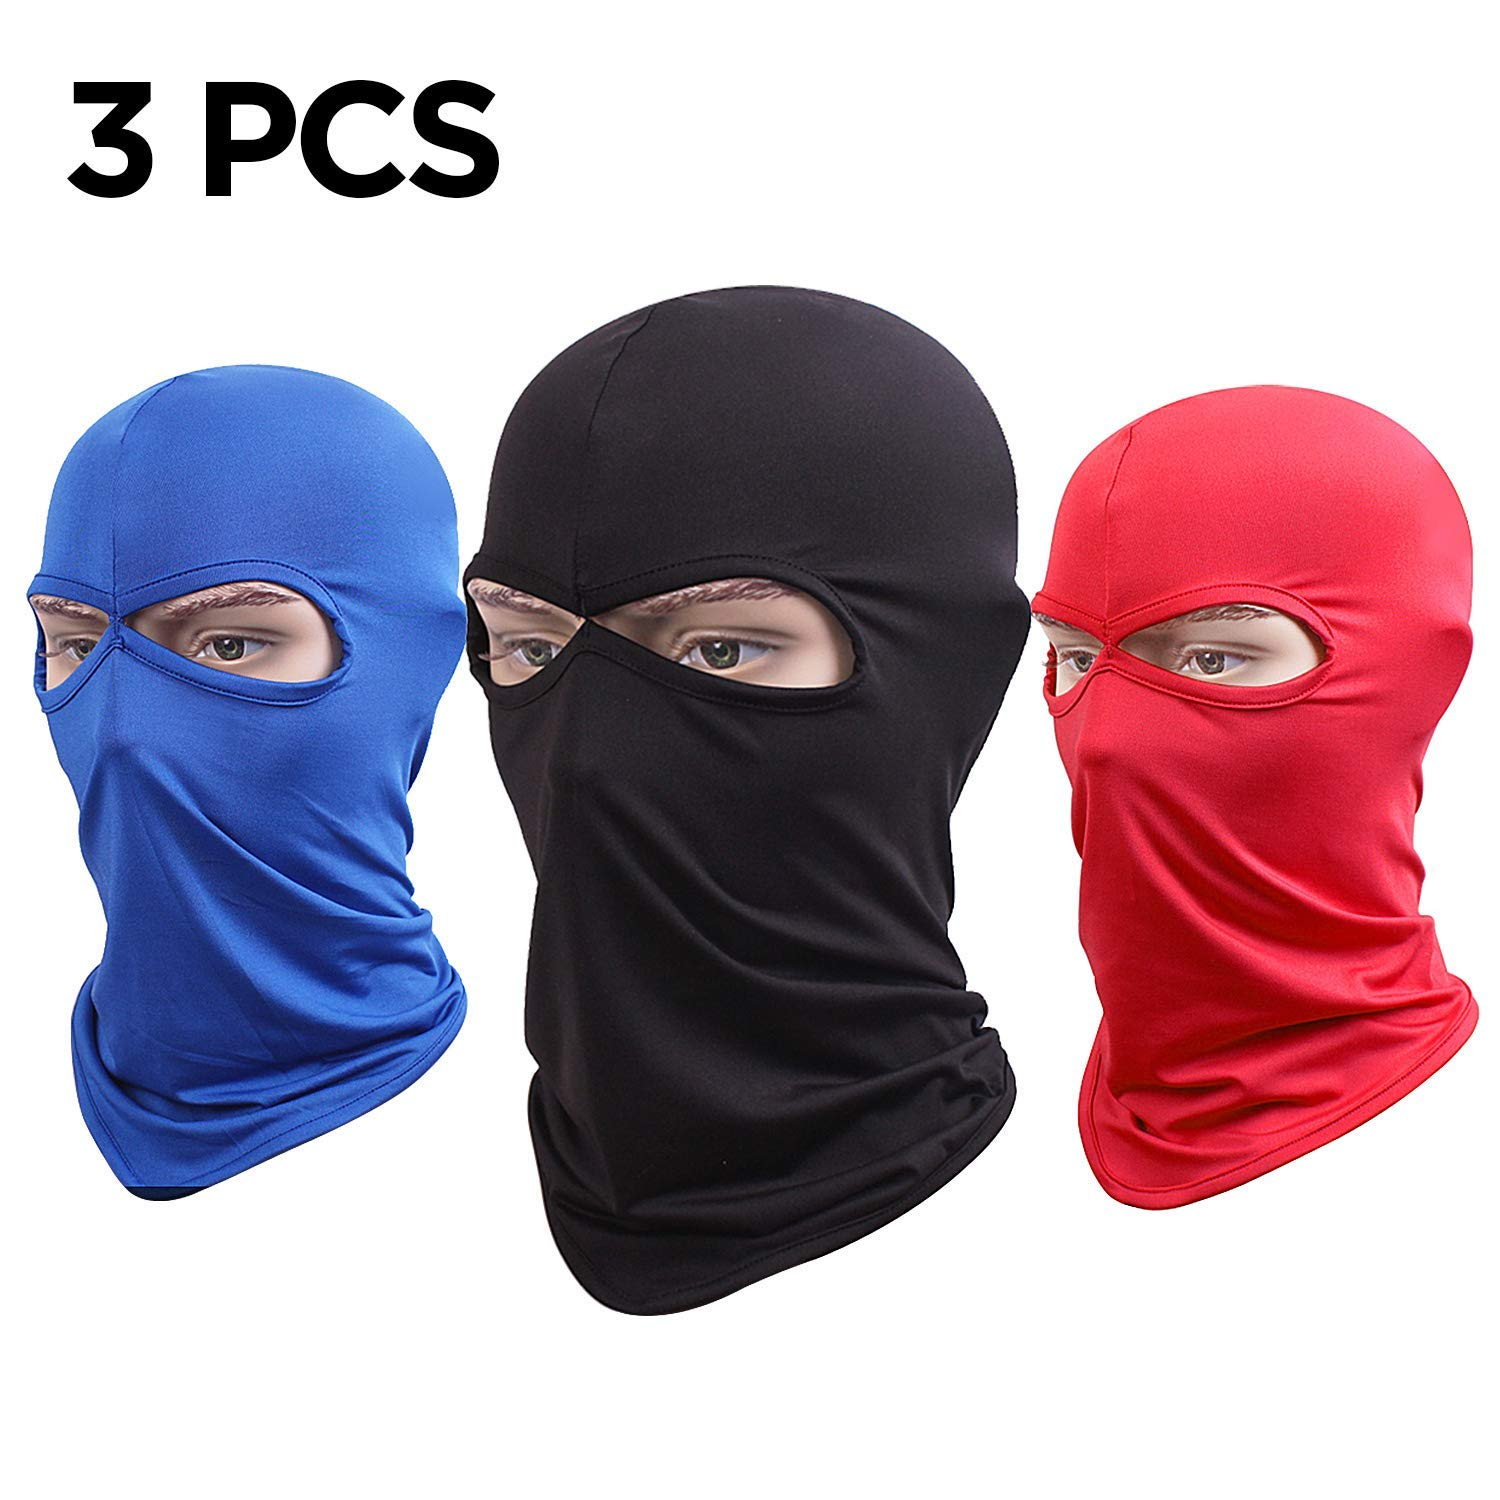 Balaclava Ski Face Mask Winter Warm Full Face Cover, (3 Pack)Ultimate Windproof Paneling with Lycra Fabrics for Cold Skiing Hiking Motorcycle Snowboard Cycling for Men & Women & Children,3 Colors